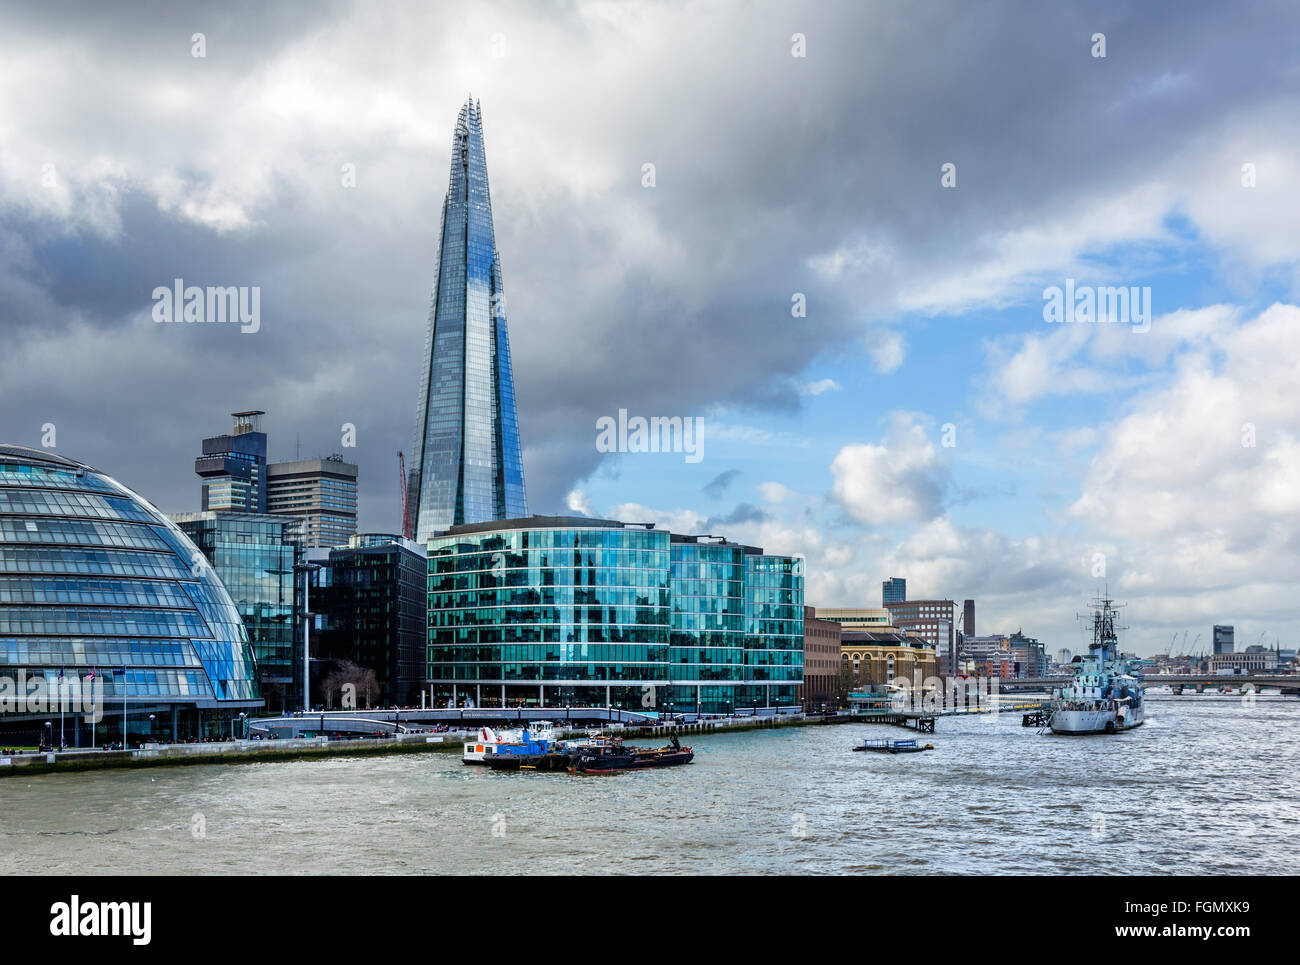 View from Tower Bridge towards The Shard and HMS Belfast, Southwark, London, England, UK - Stock Image